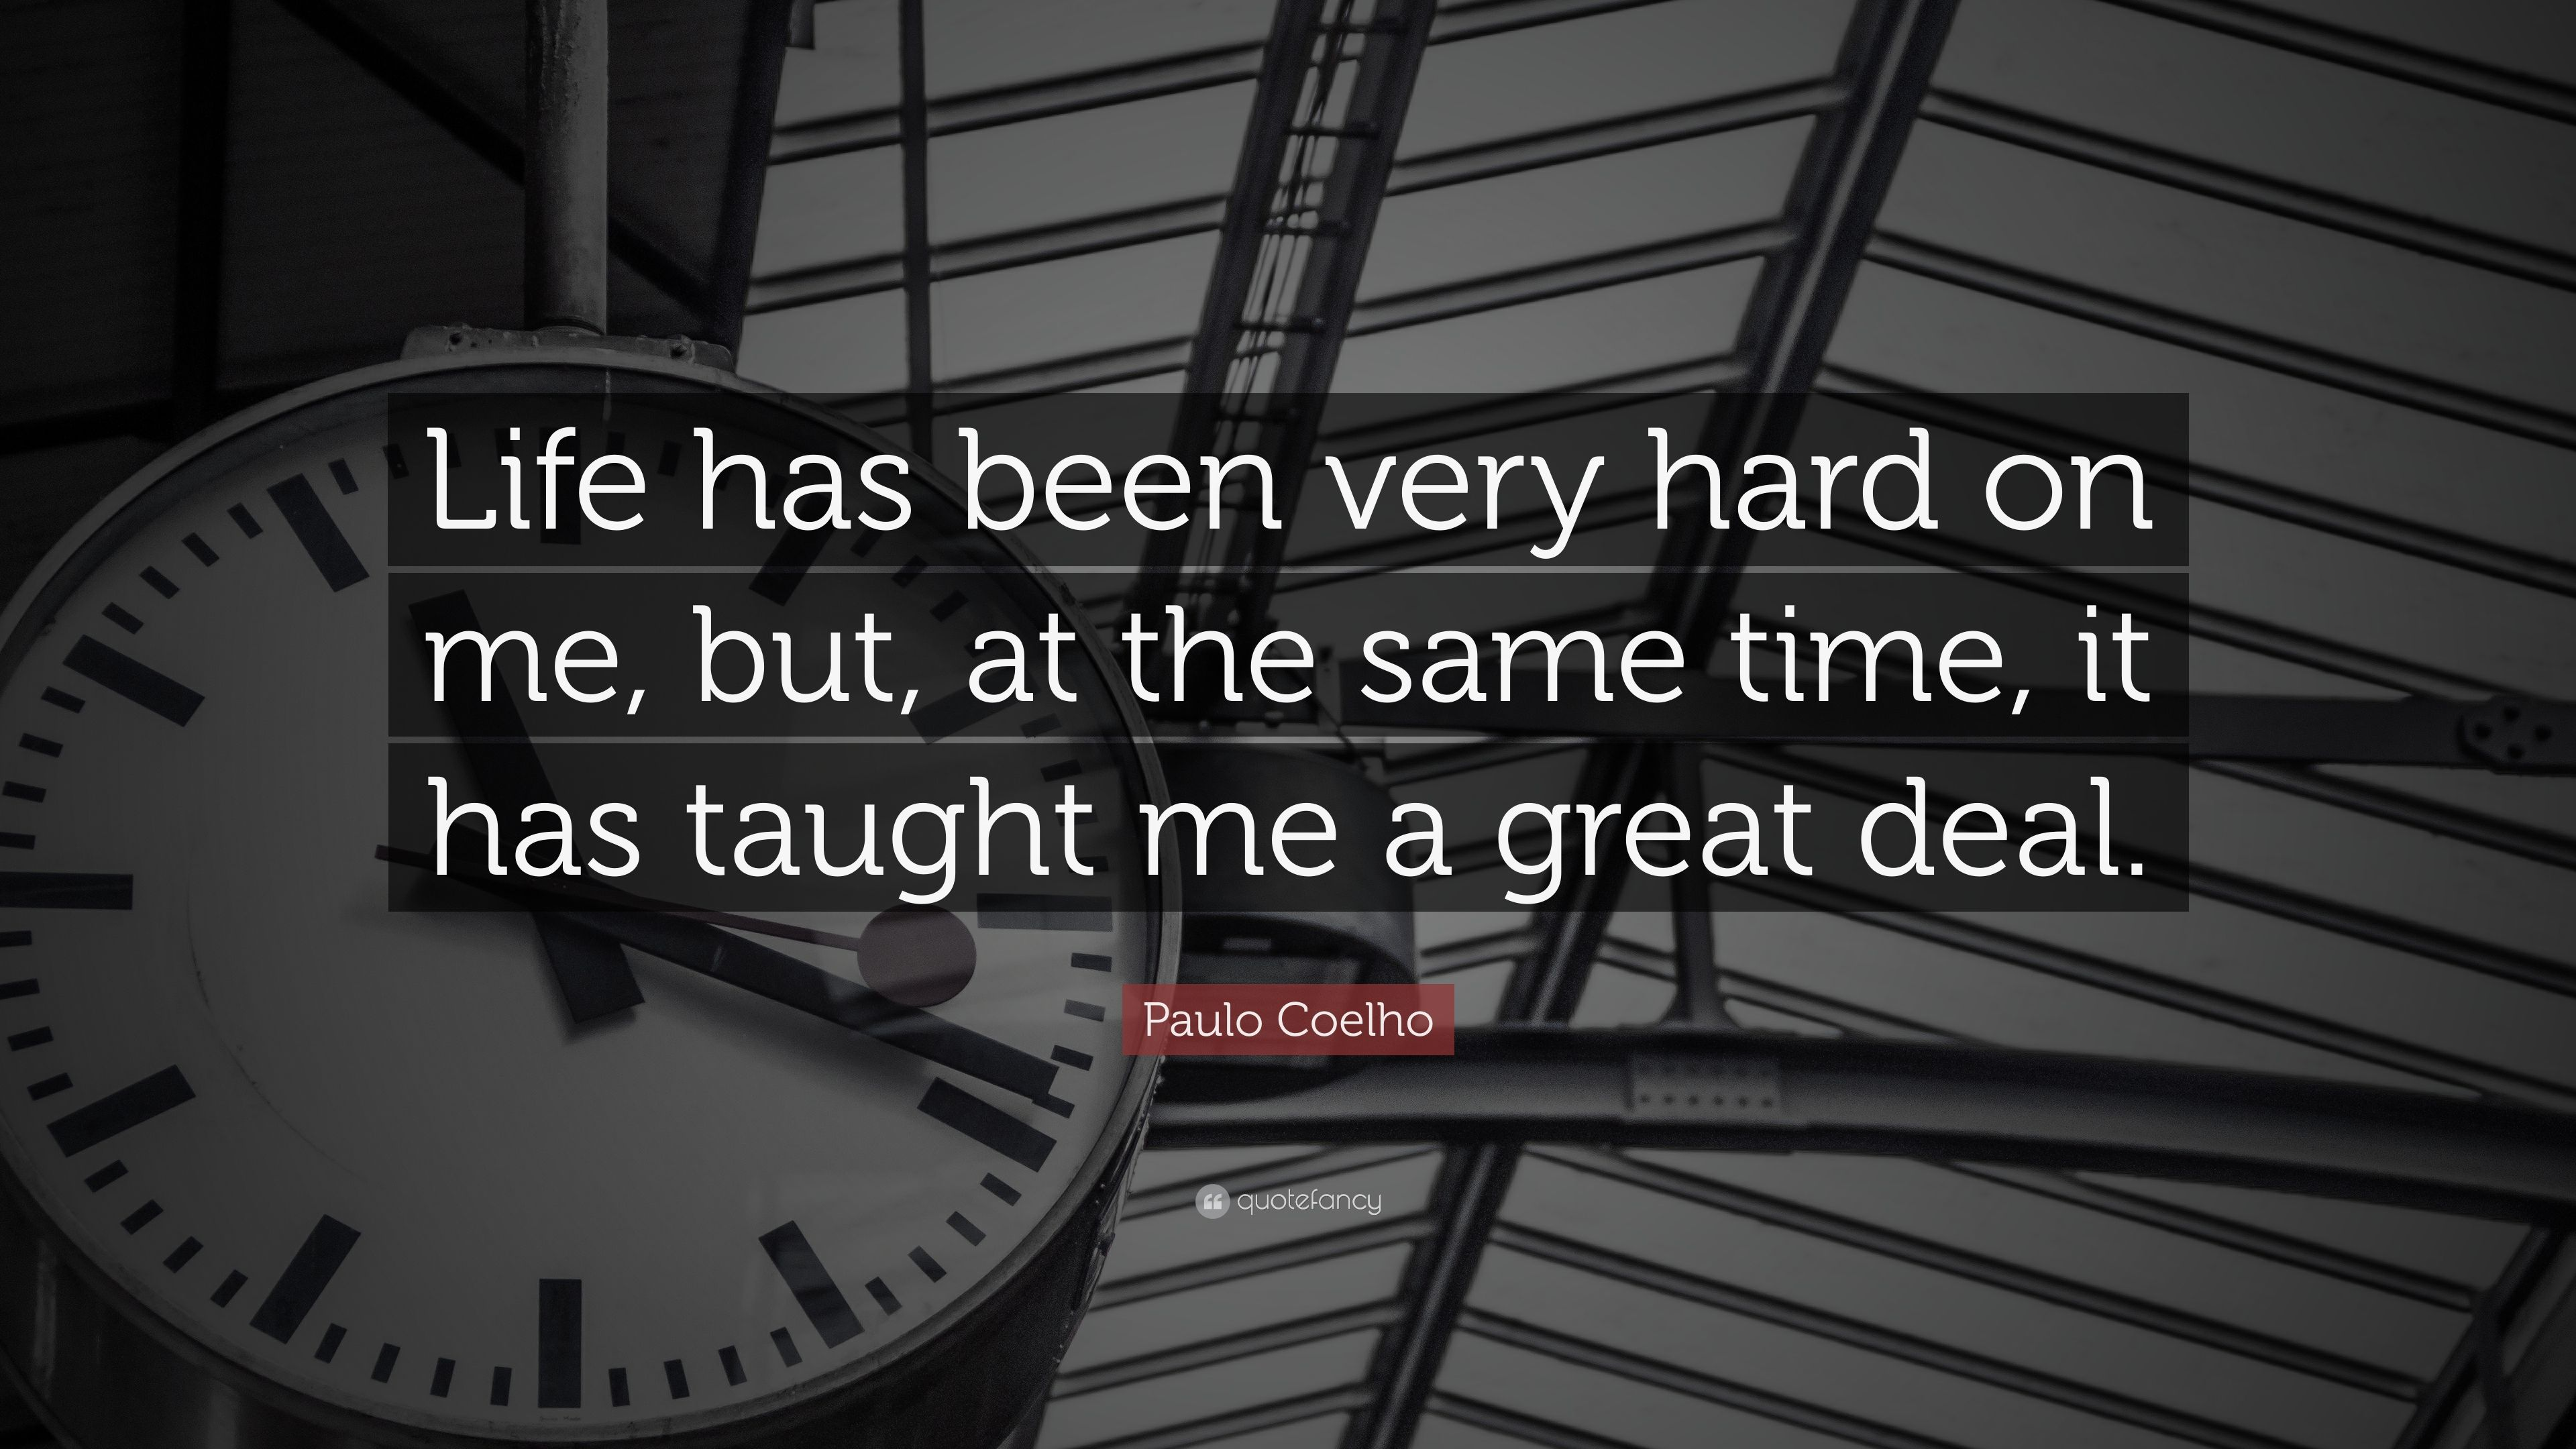 Paulo Coelho Quote: U201cLife Has Been Very Hard On Me, But, At